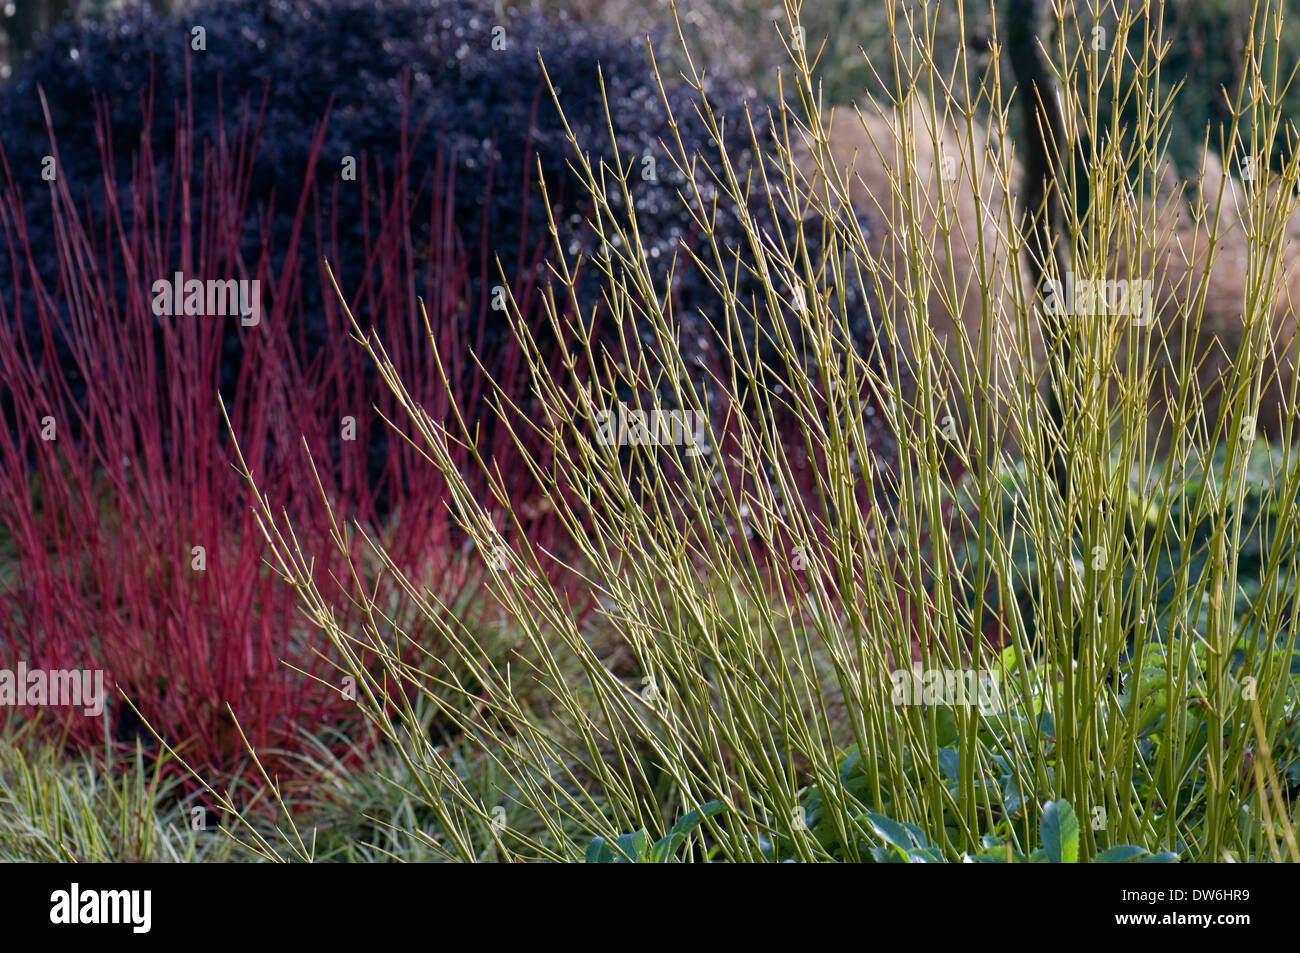 Winter border containing Cornus stolonifera 'Flaviramea', Cornus alba 'Sibirica' and Pittosporum tenuifolium 'Tom Thumb' - Stock Image